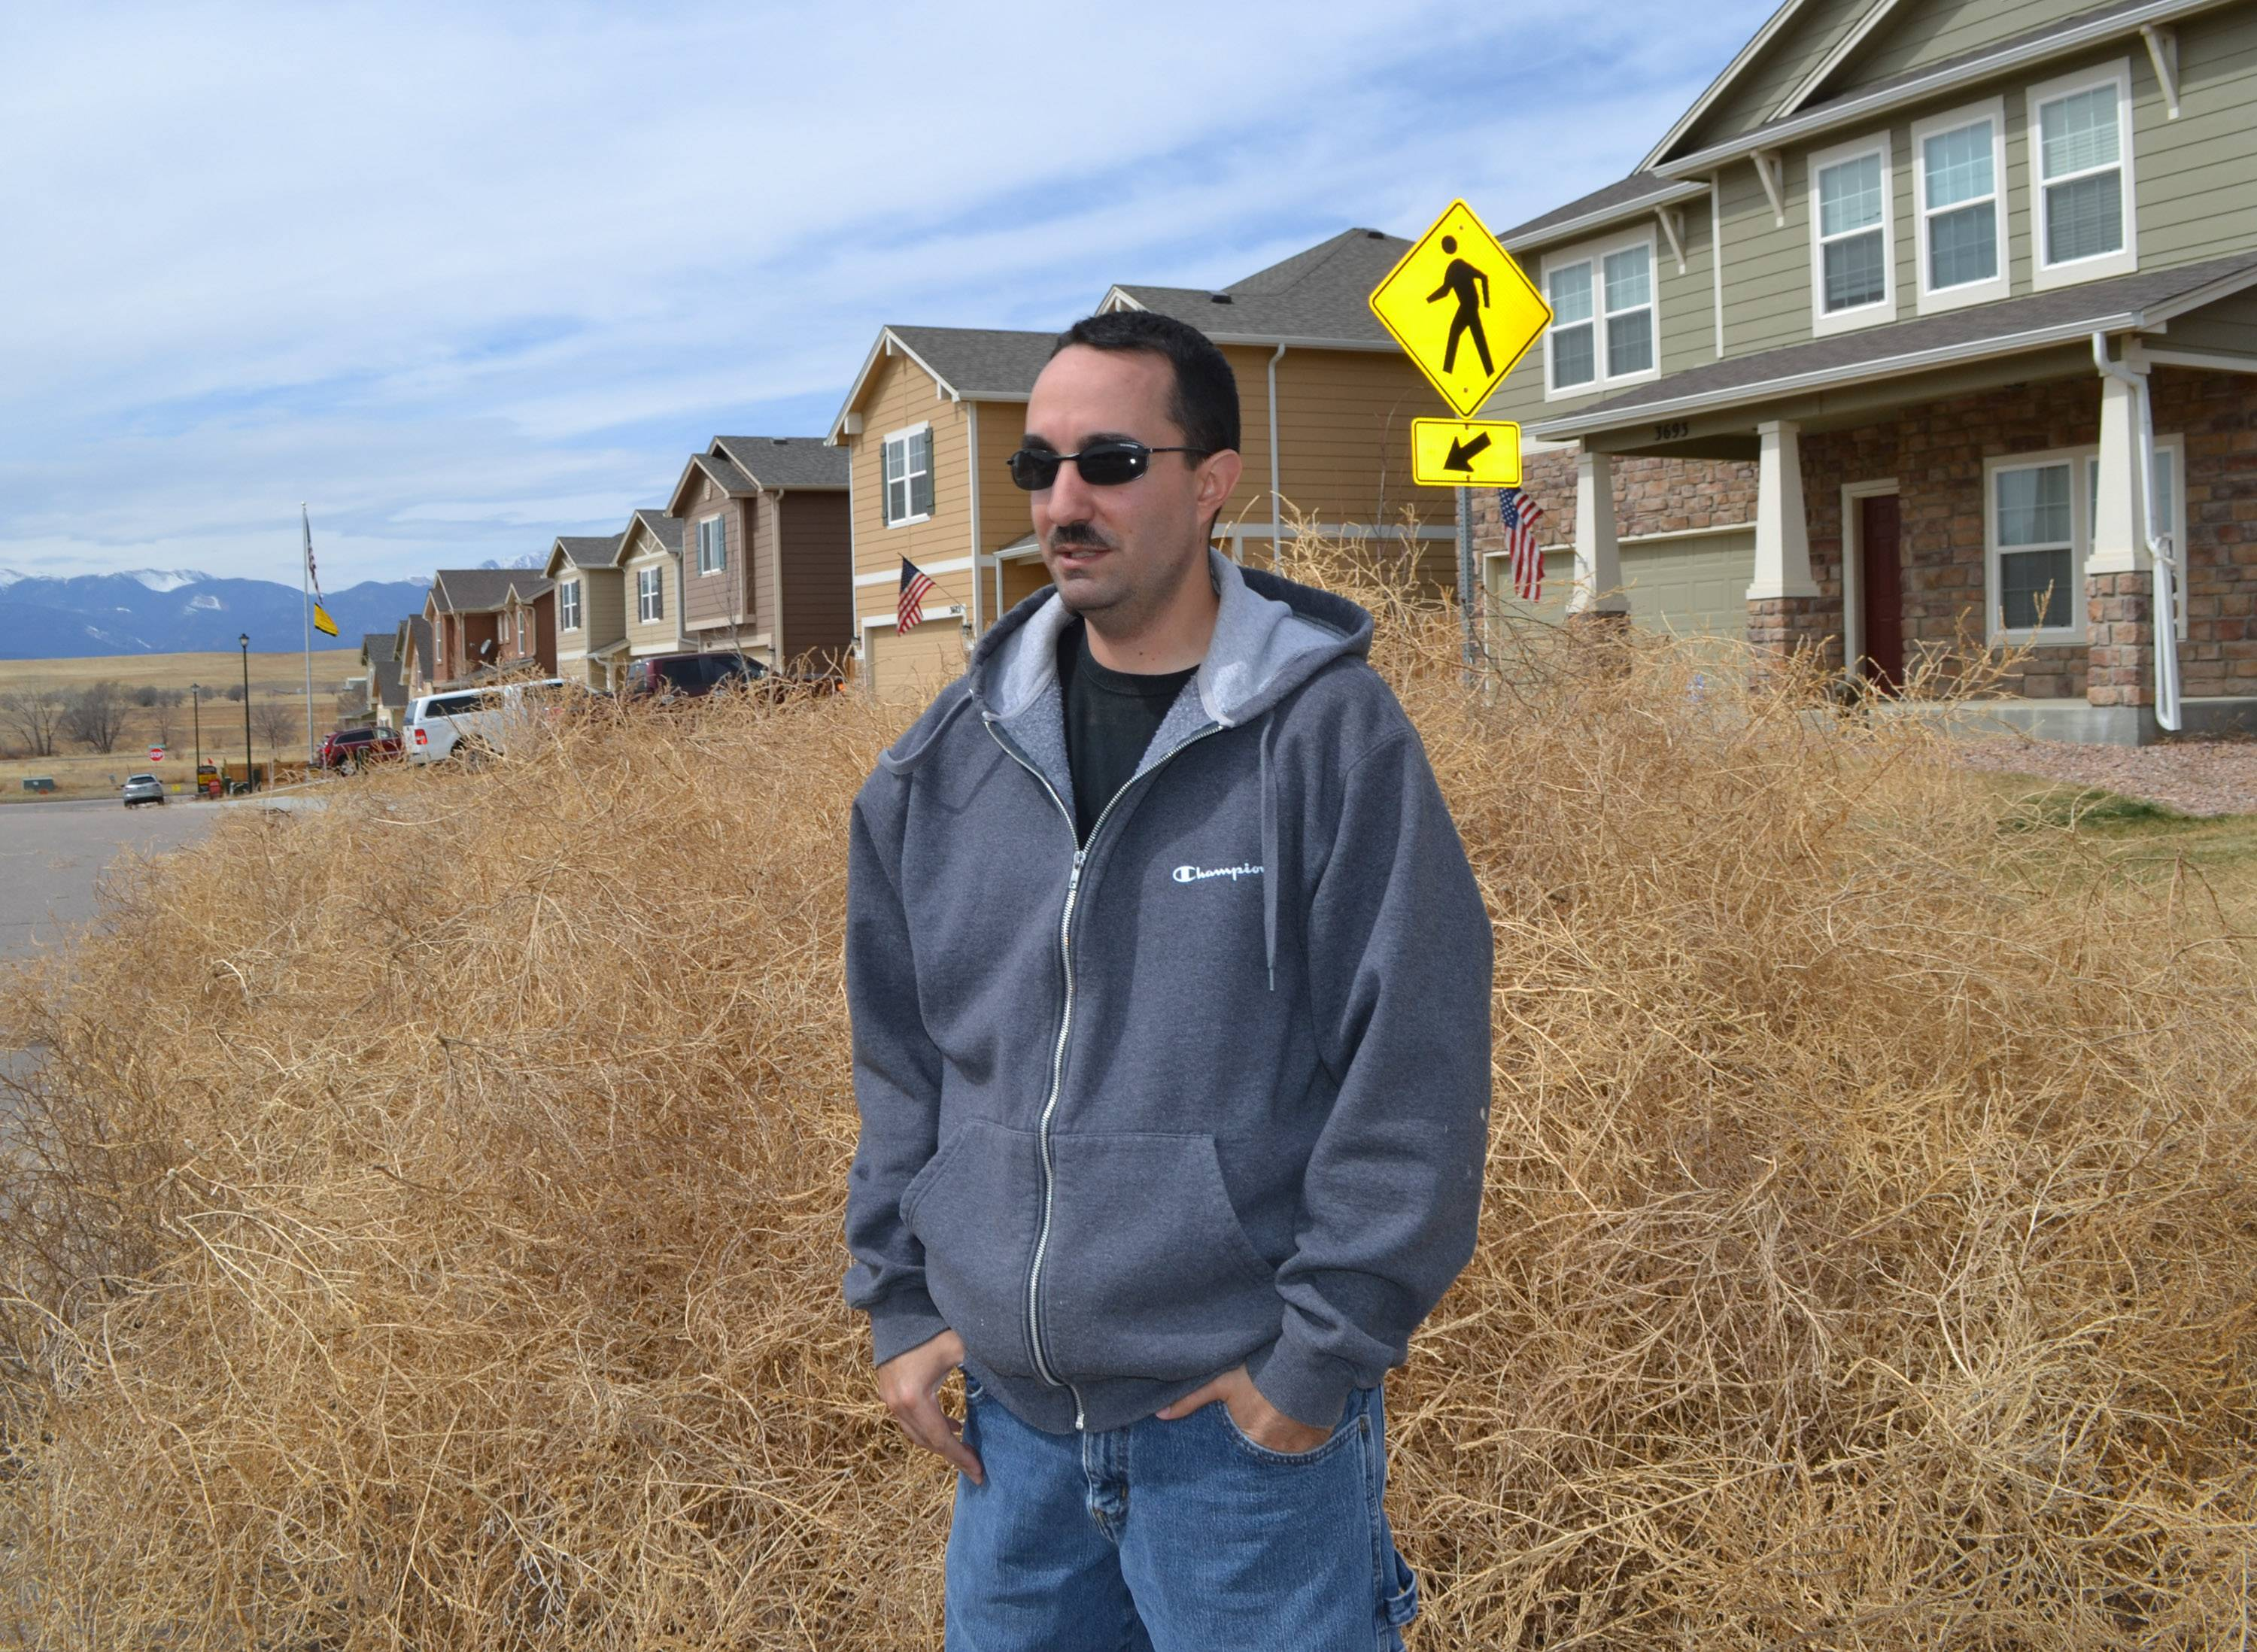 Chris Talbott stands with a pile of tumbleweed in front of his home in Colorado Springs, Colo. Parts of Colorado are being overrun with tumbleweeds because of the drought affecting much of the western United States.